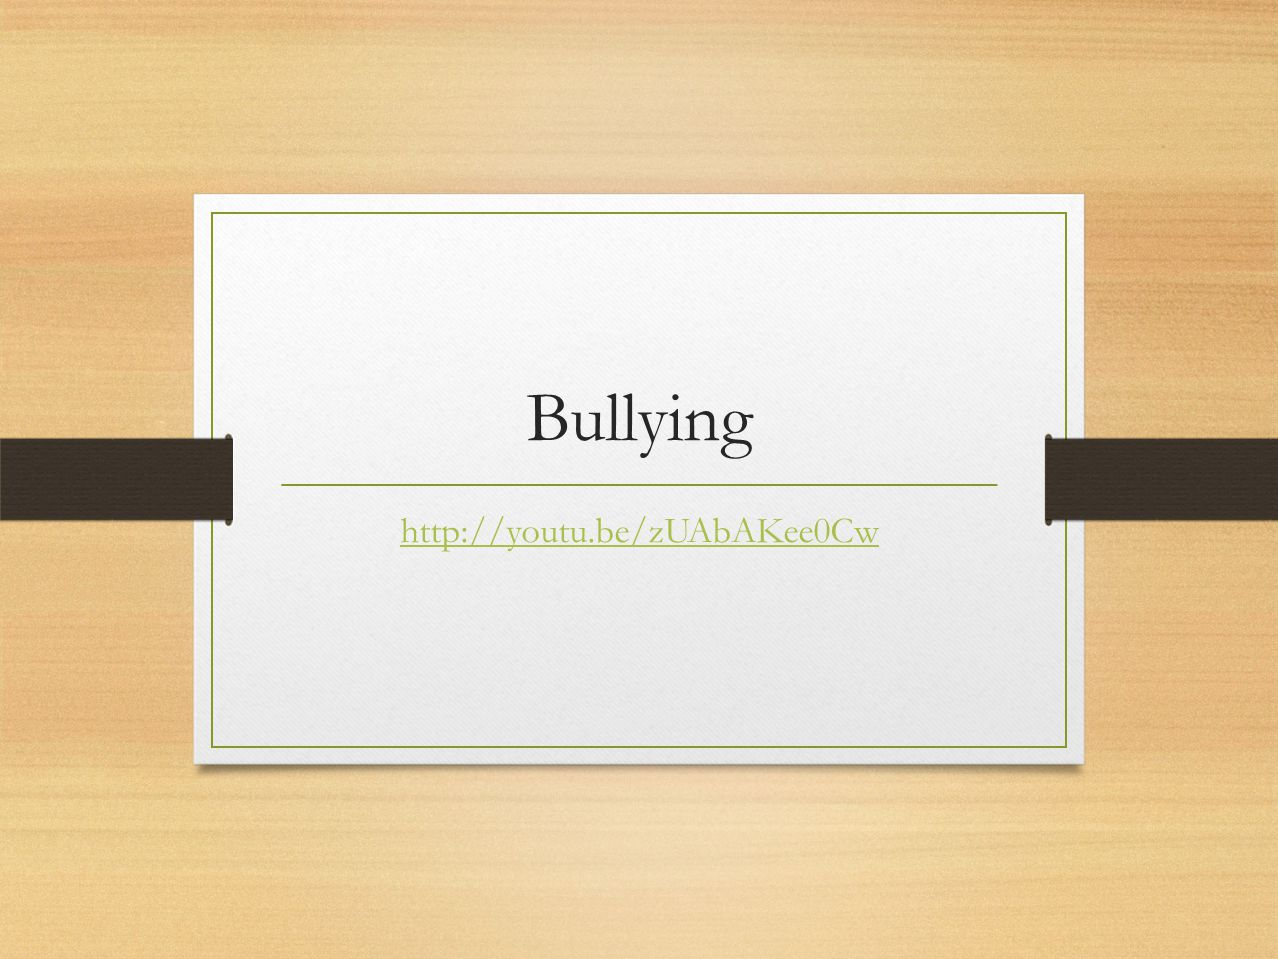 Bullying http://youtu.be/zUAbAKee0Cw